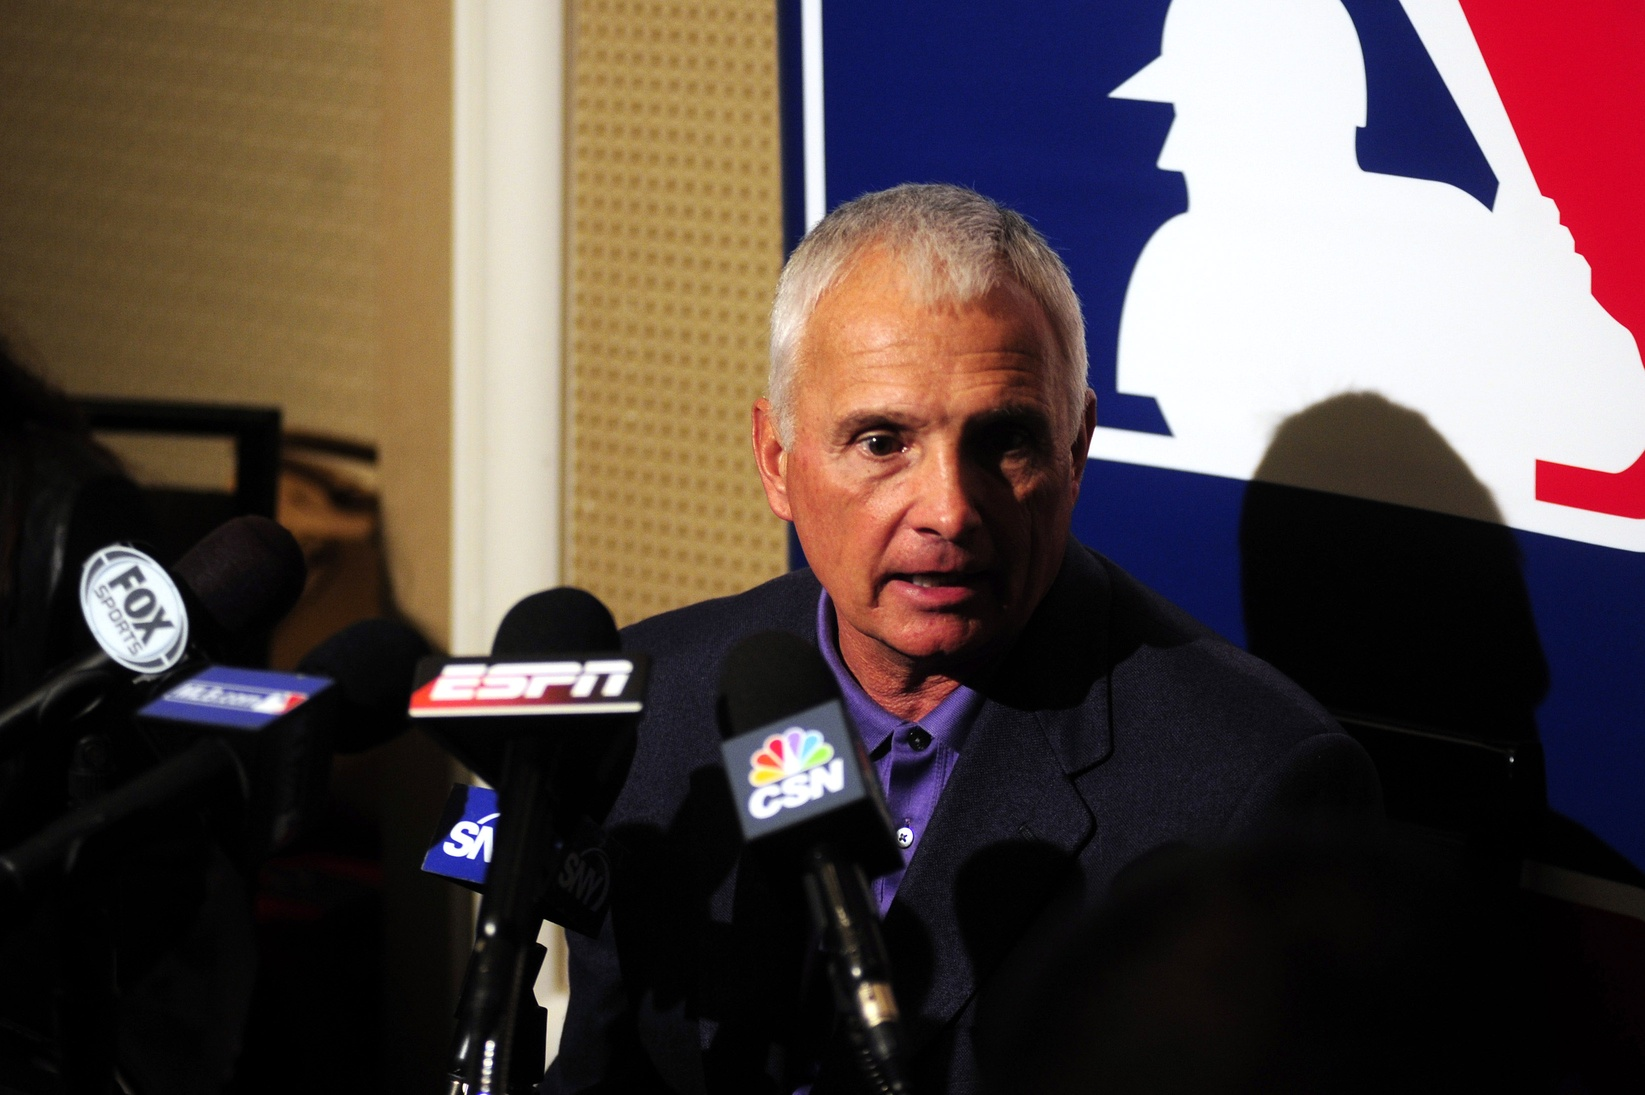 Terry Collins Ranked MLB's 13th Best Manager